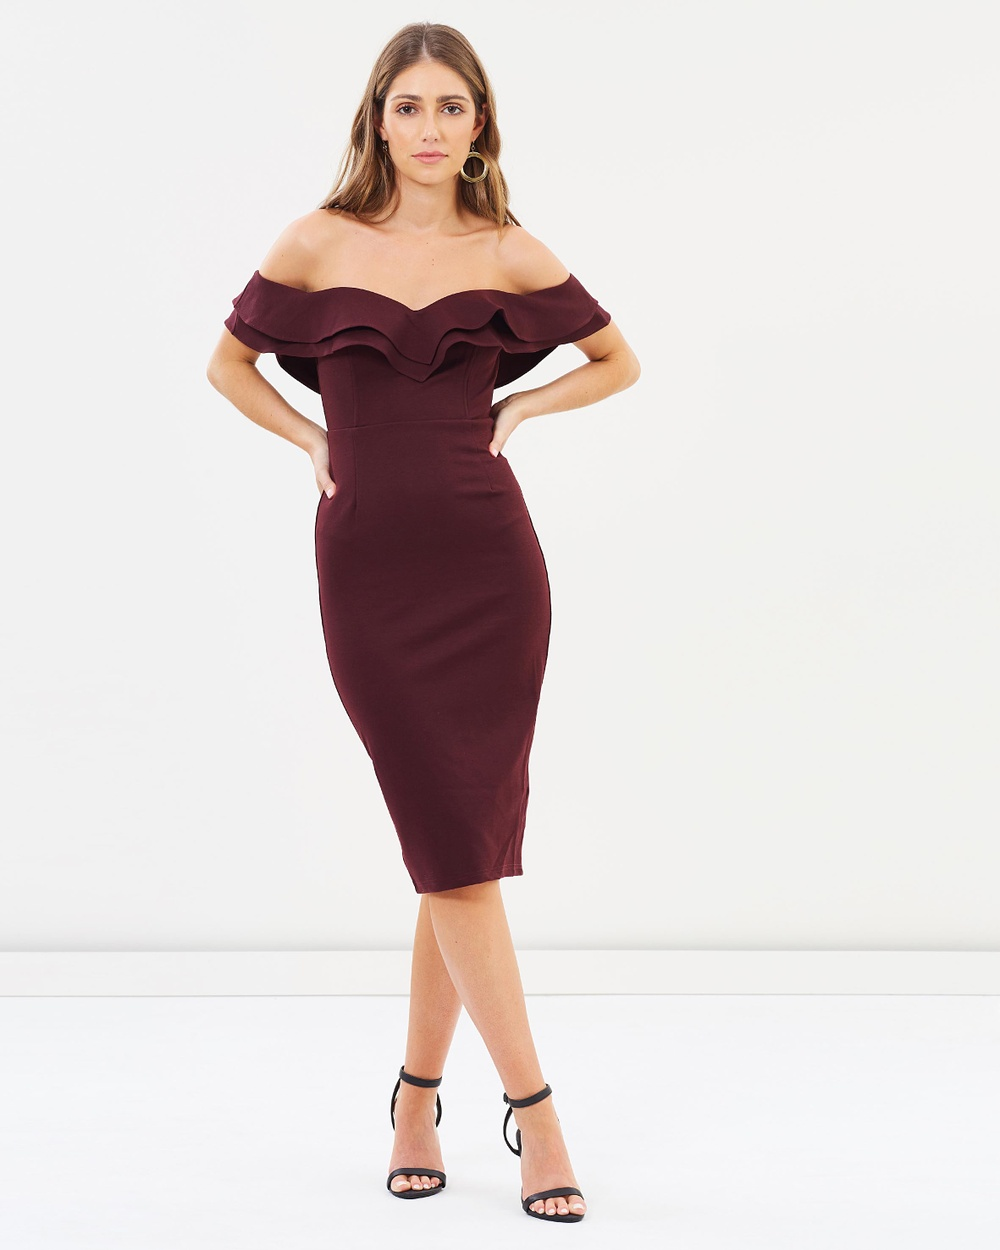 Fresh Soul Love Affair Dress Dresses Burgundy Love Affair Dress